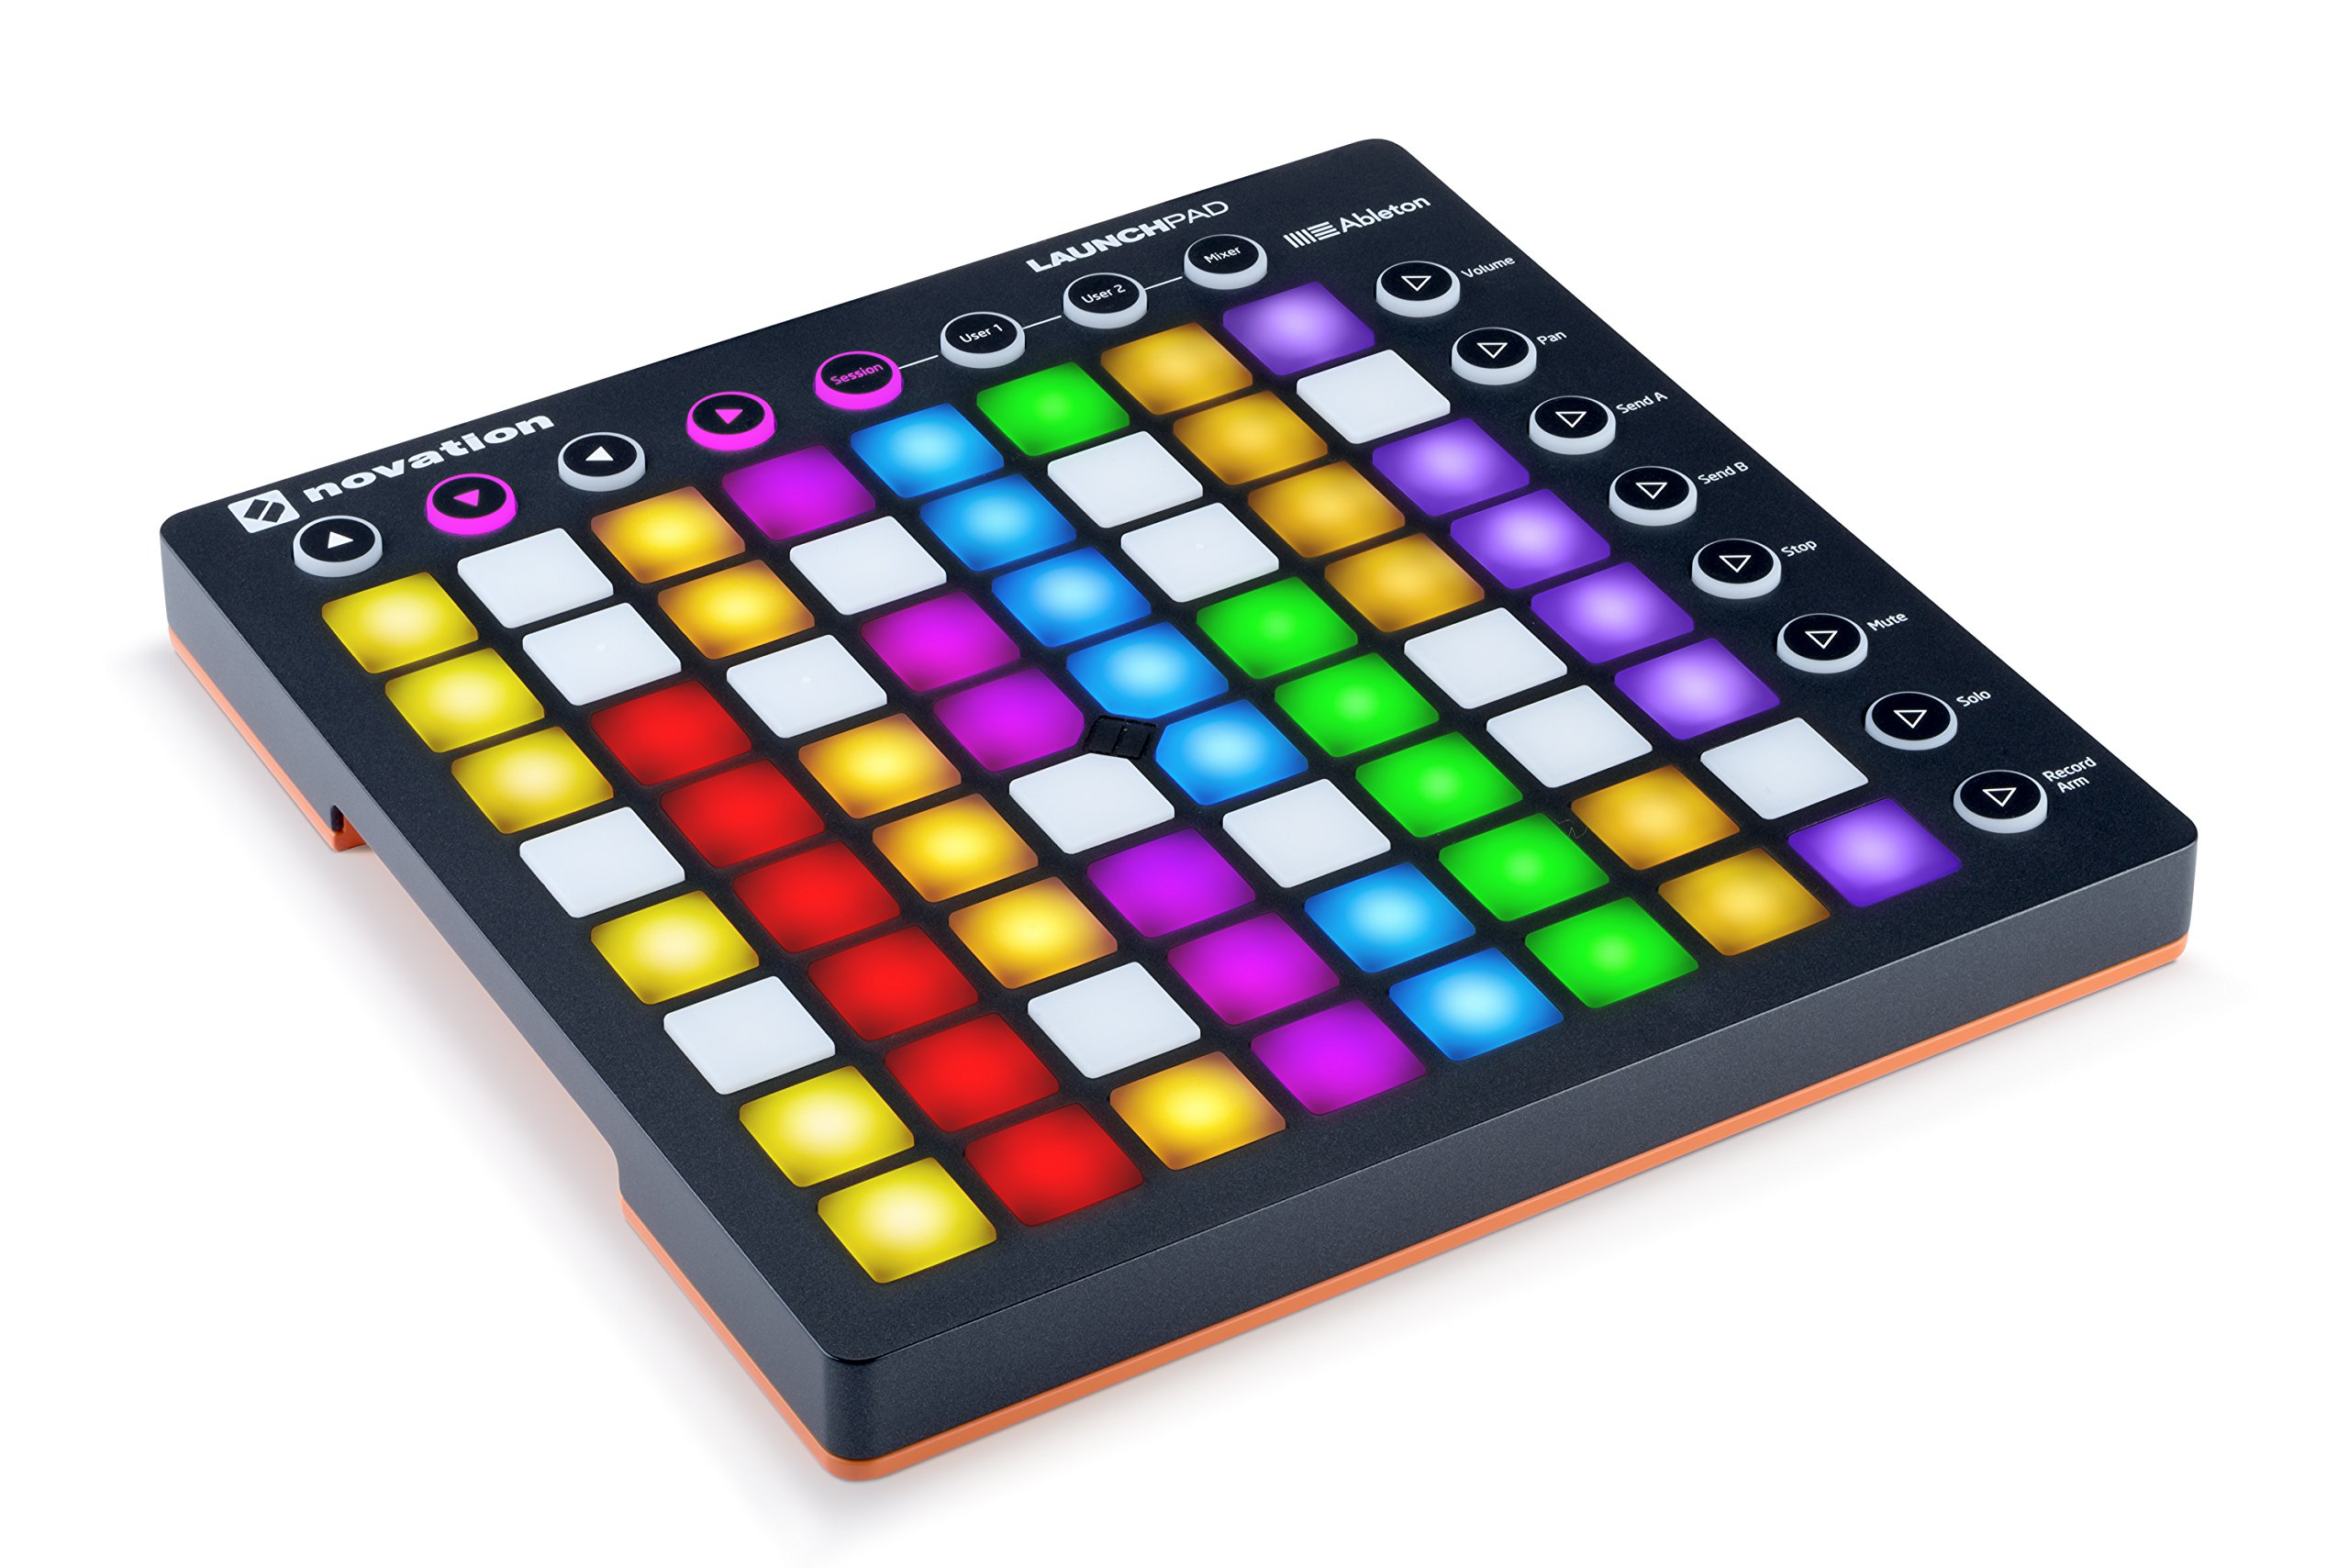 Novation Launchpad Ableton Live Controller with 64 RGB Backlit Pads (8x8 Grid) by Novation